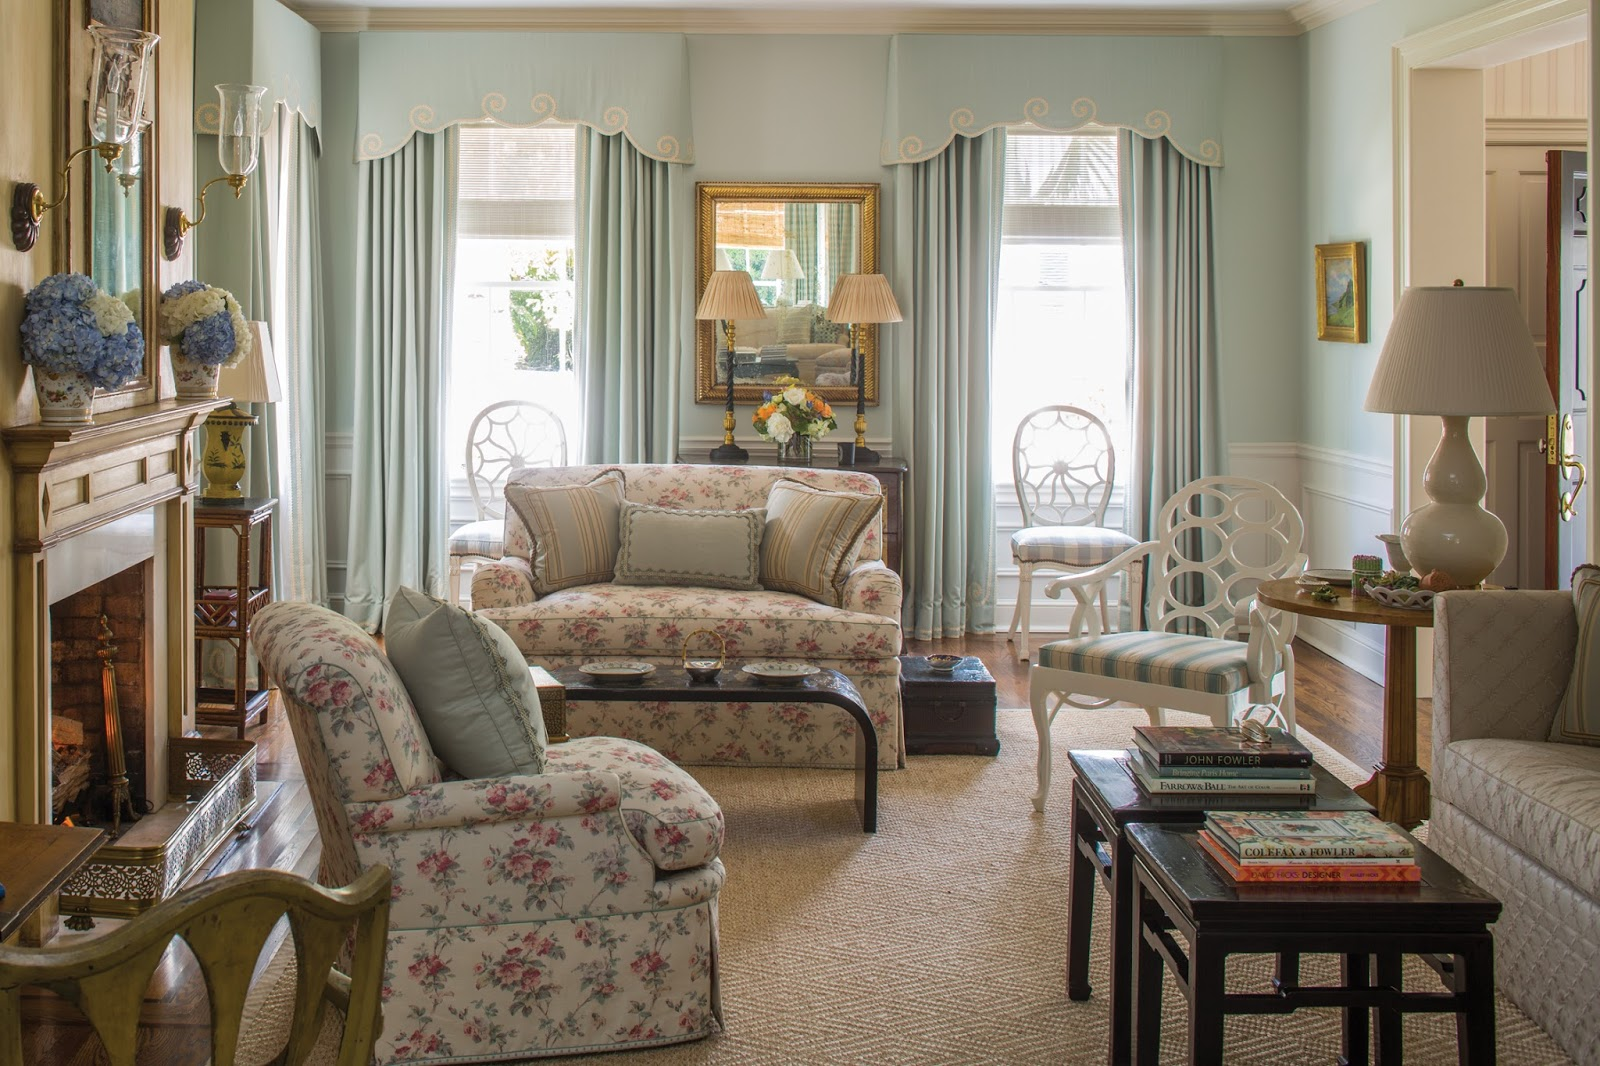 Traditional interiors by leta austin foster the glam pad for Traditional furnishings